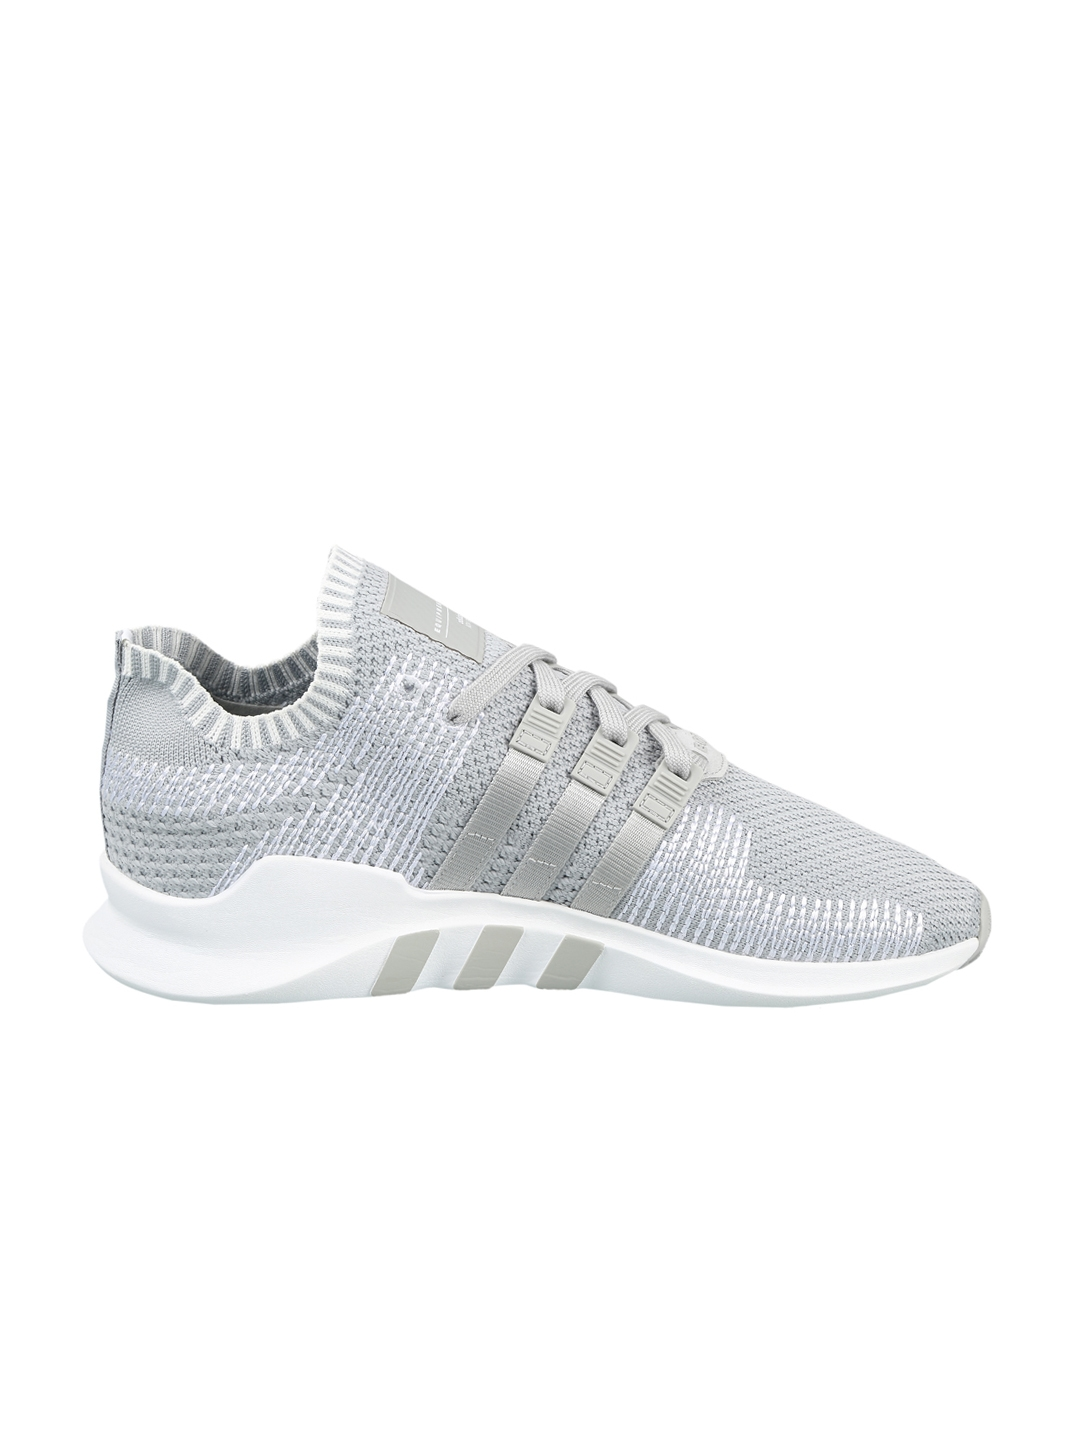 watch d91f4 8ec9f Adidas Originals Men Grey EQT Support Adv PK Sneakers